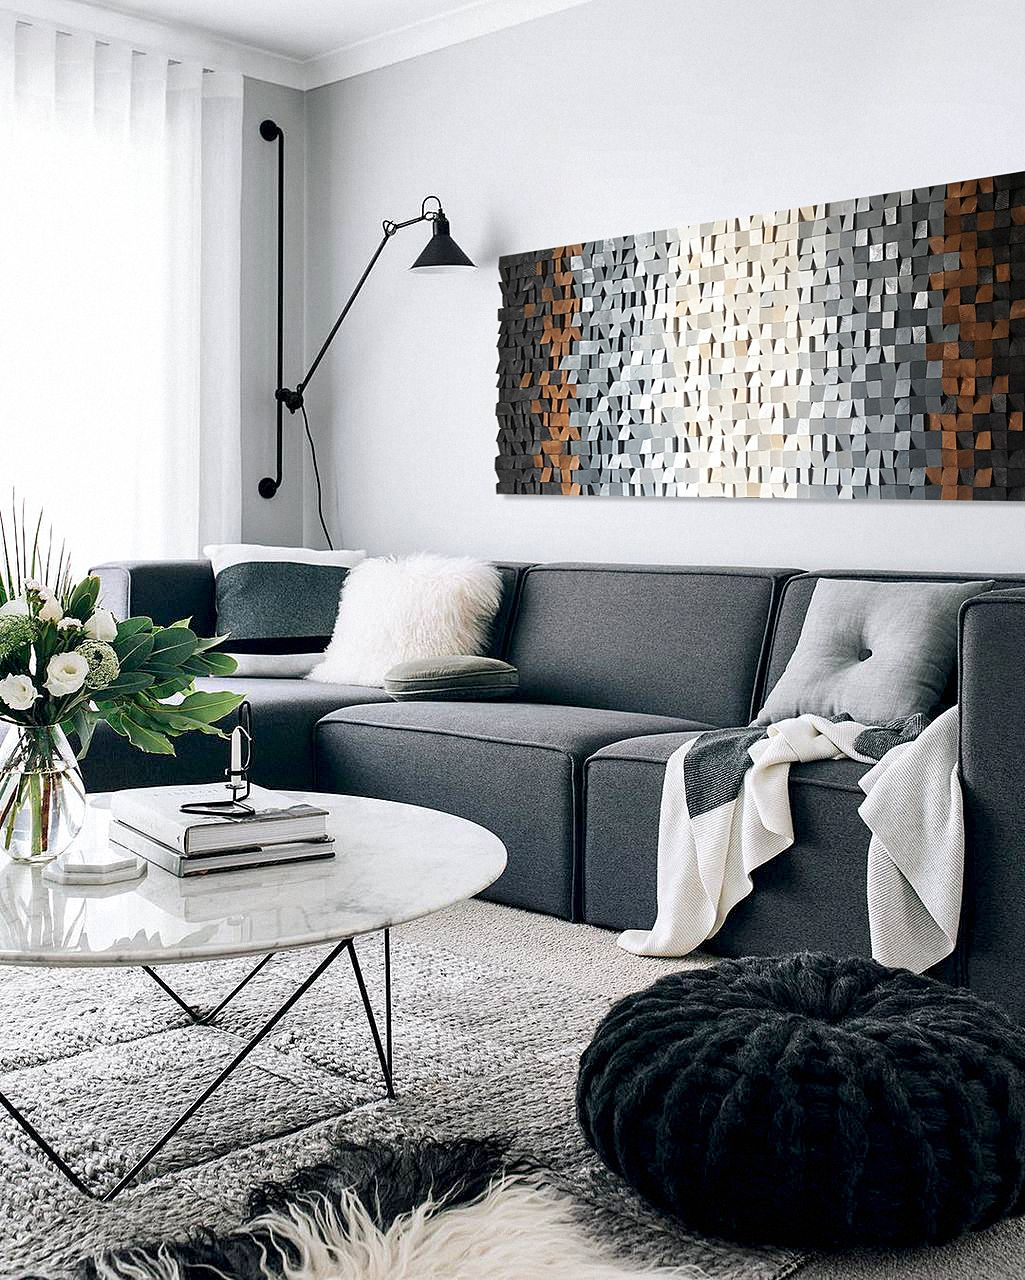 Scandinavian Wood Wall Art Homey Modern Wood Wall Sculpture Abstract Wood Painting In Gray White Brown Natural 3d Wall Art In 2020 Monochrome Living Room Living Room Designs Apartment Living Room